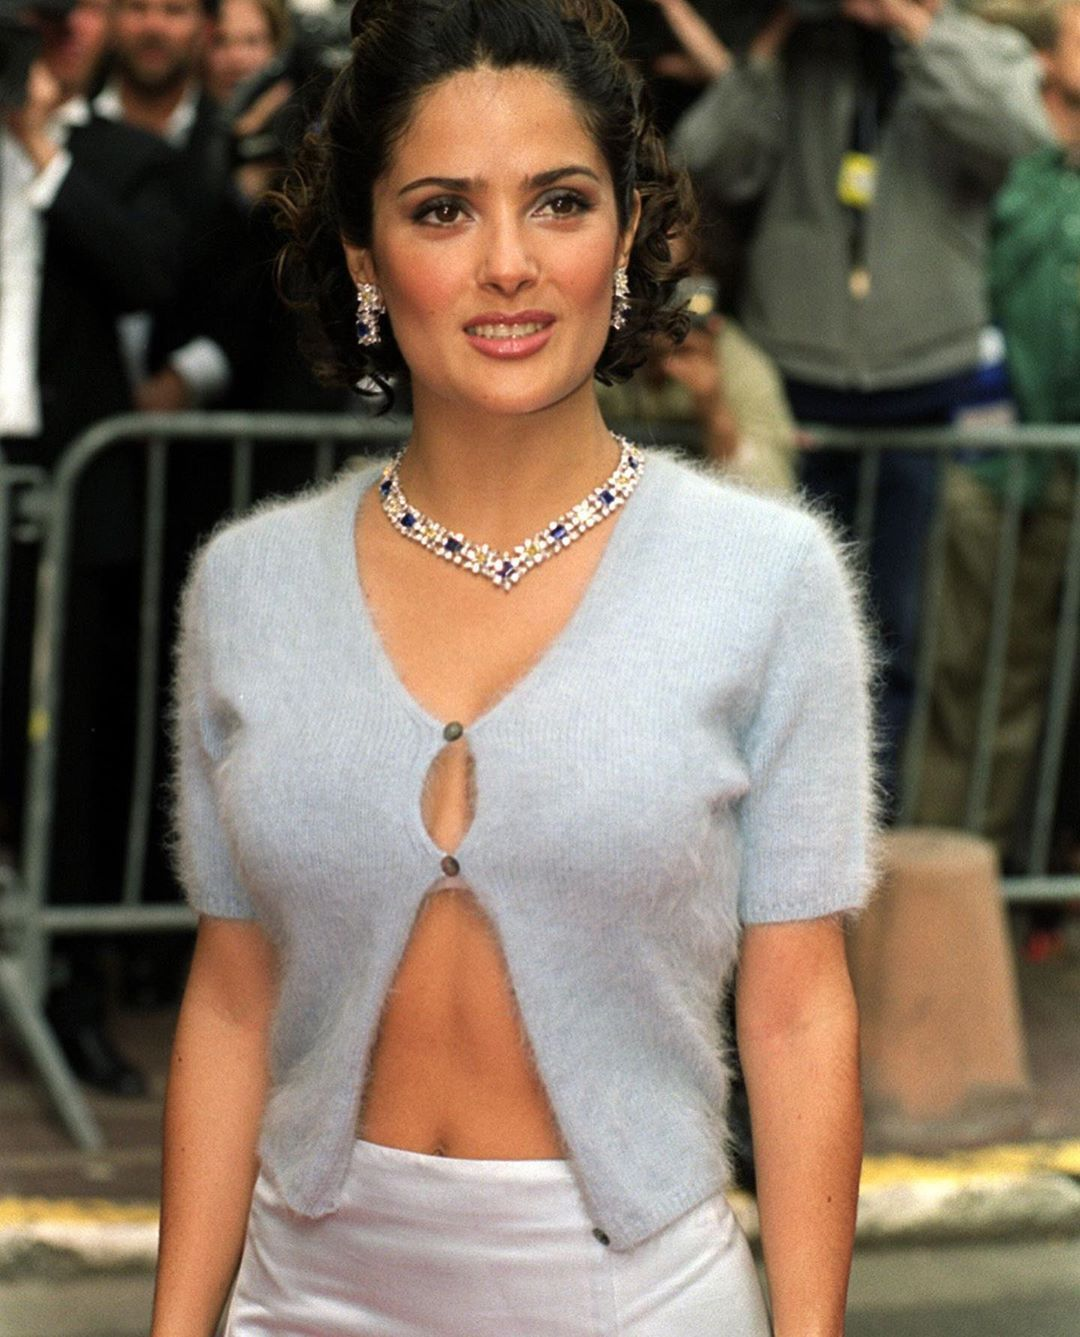 Salma Hayek in 2020 (With images) | Body shapes women